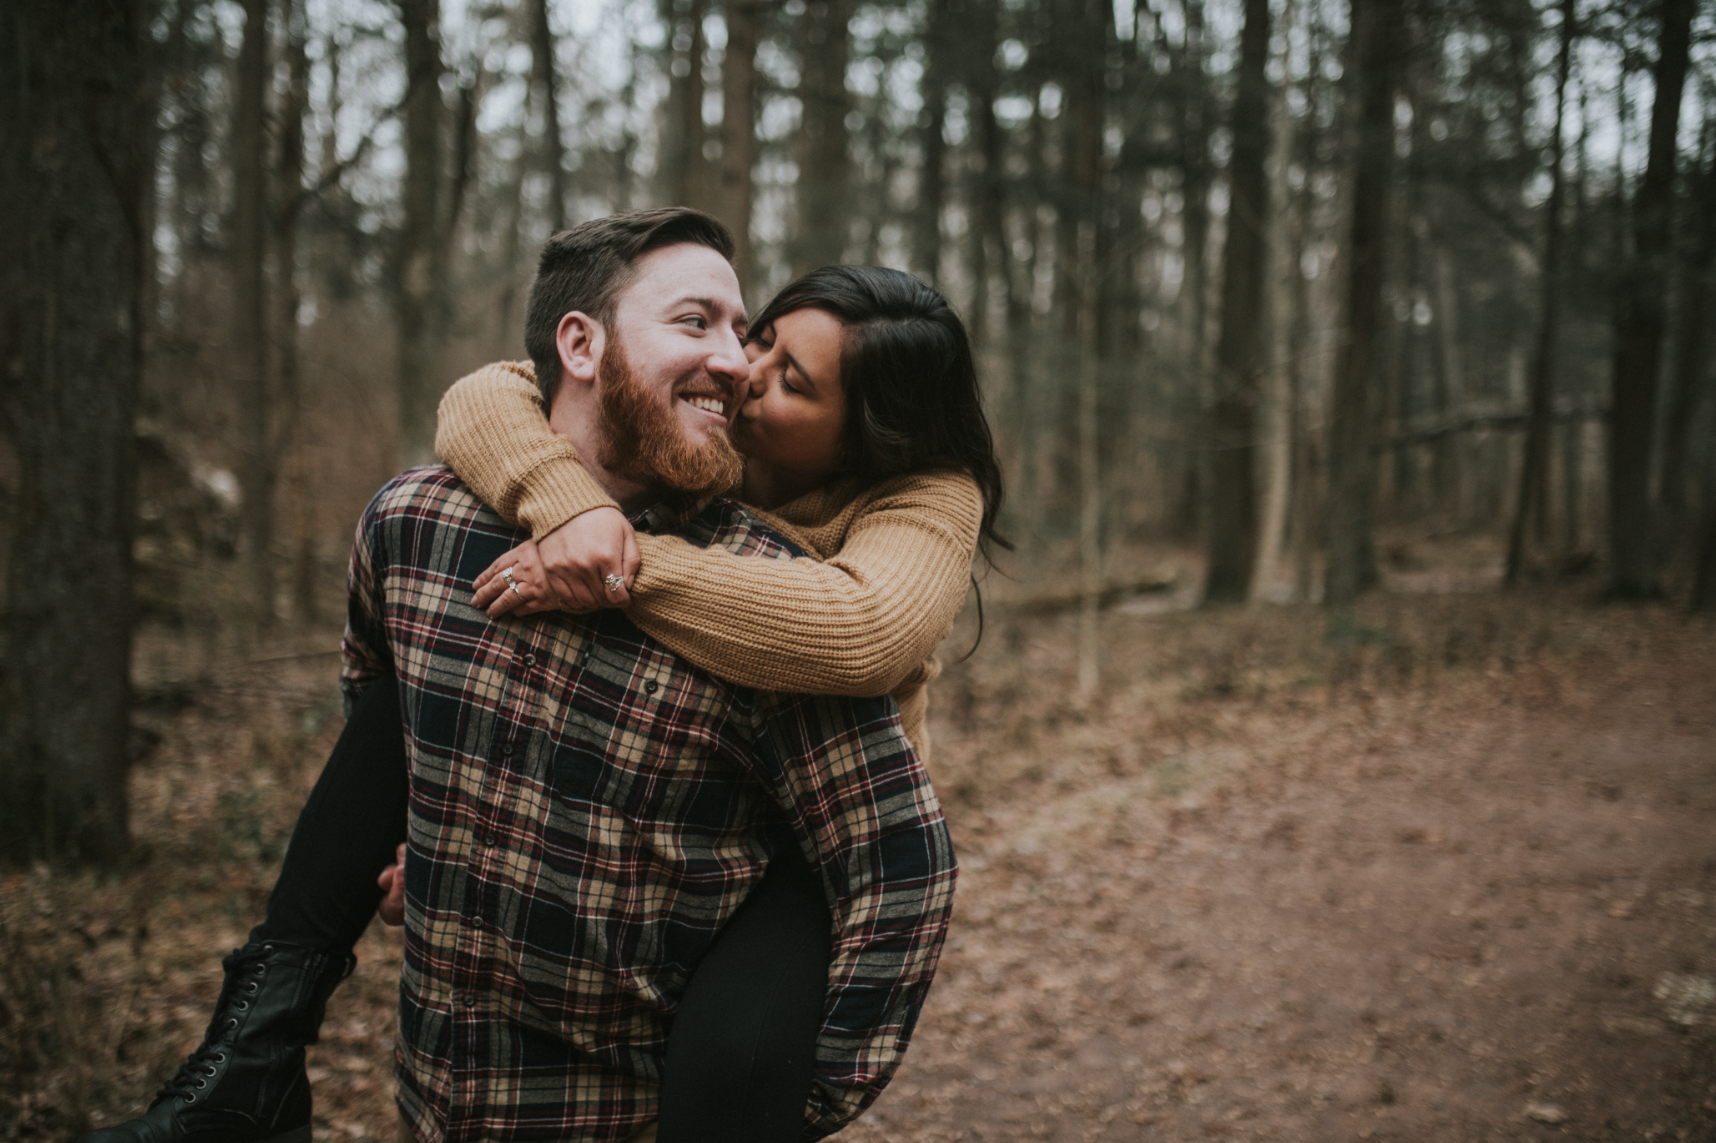 matt-natalia-winter-woods-engagement-session-pennsylvania-wedding-photographer-33